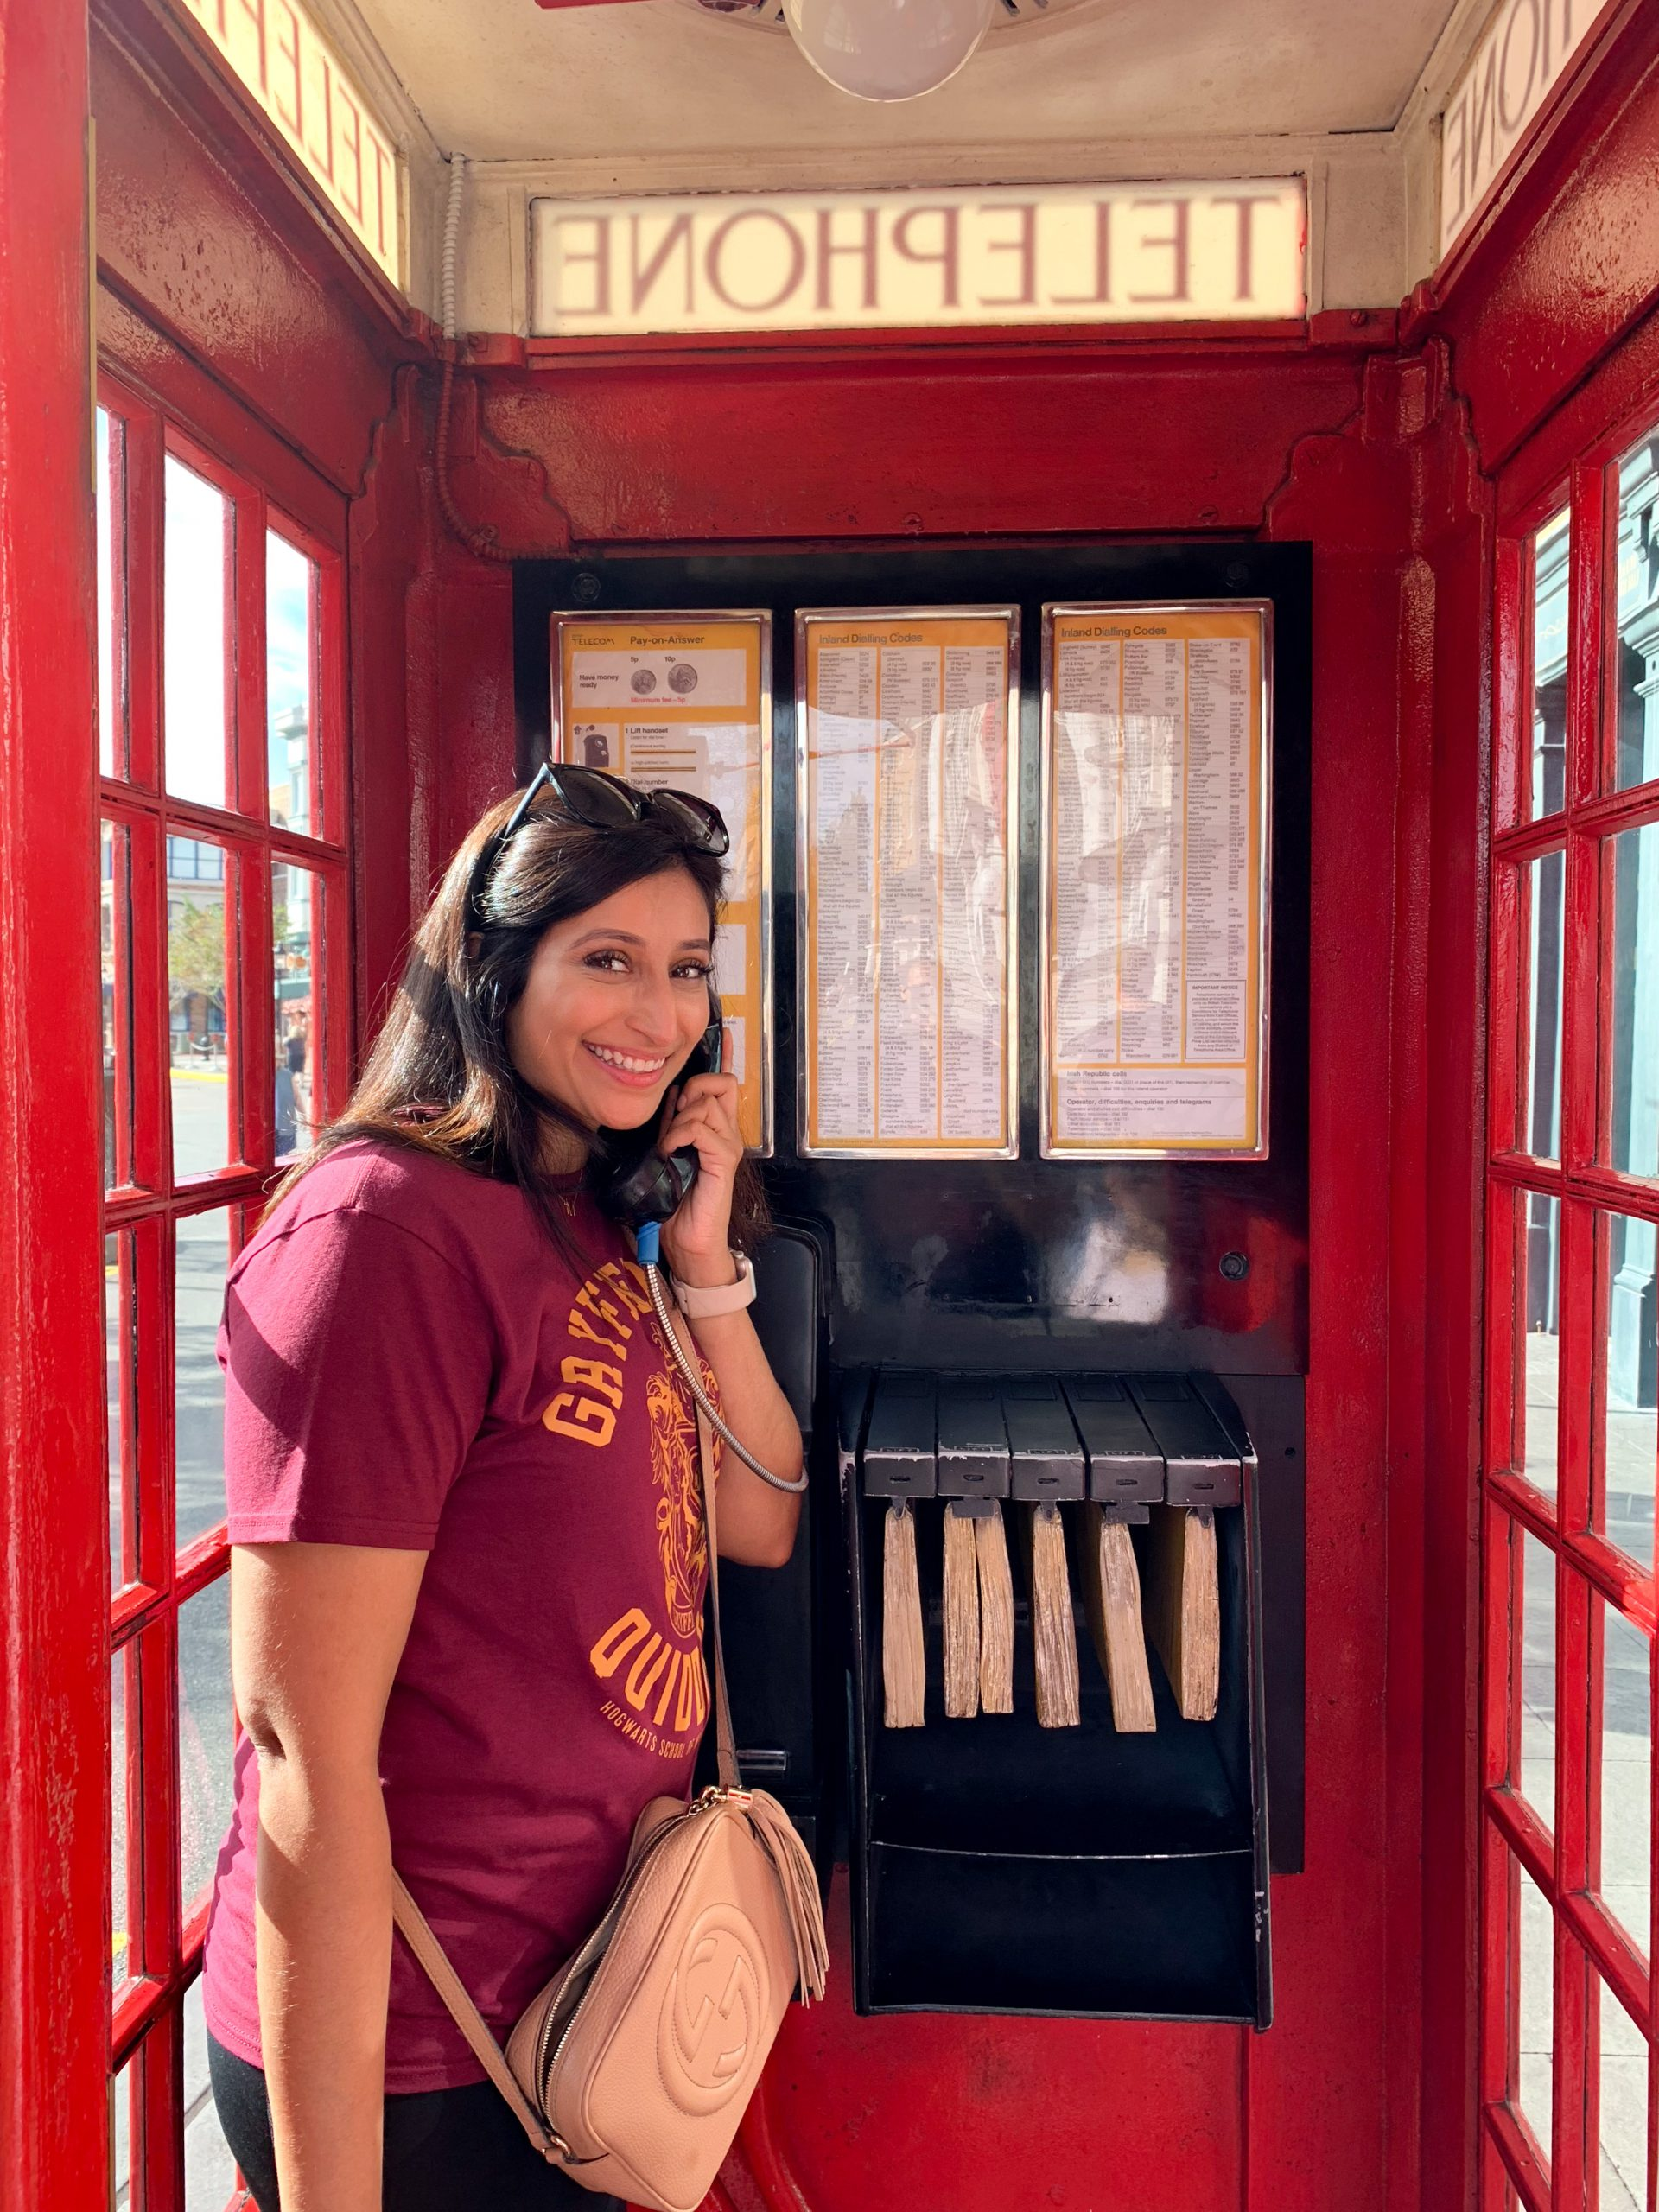 dialing the ministry at the Wizarding World of Harry Potter